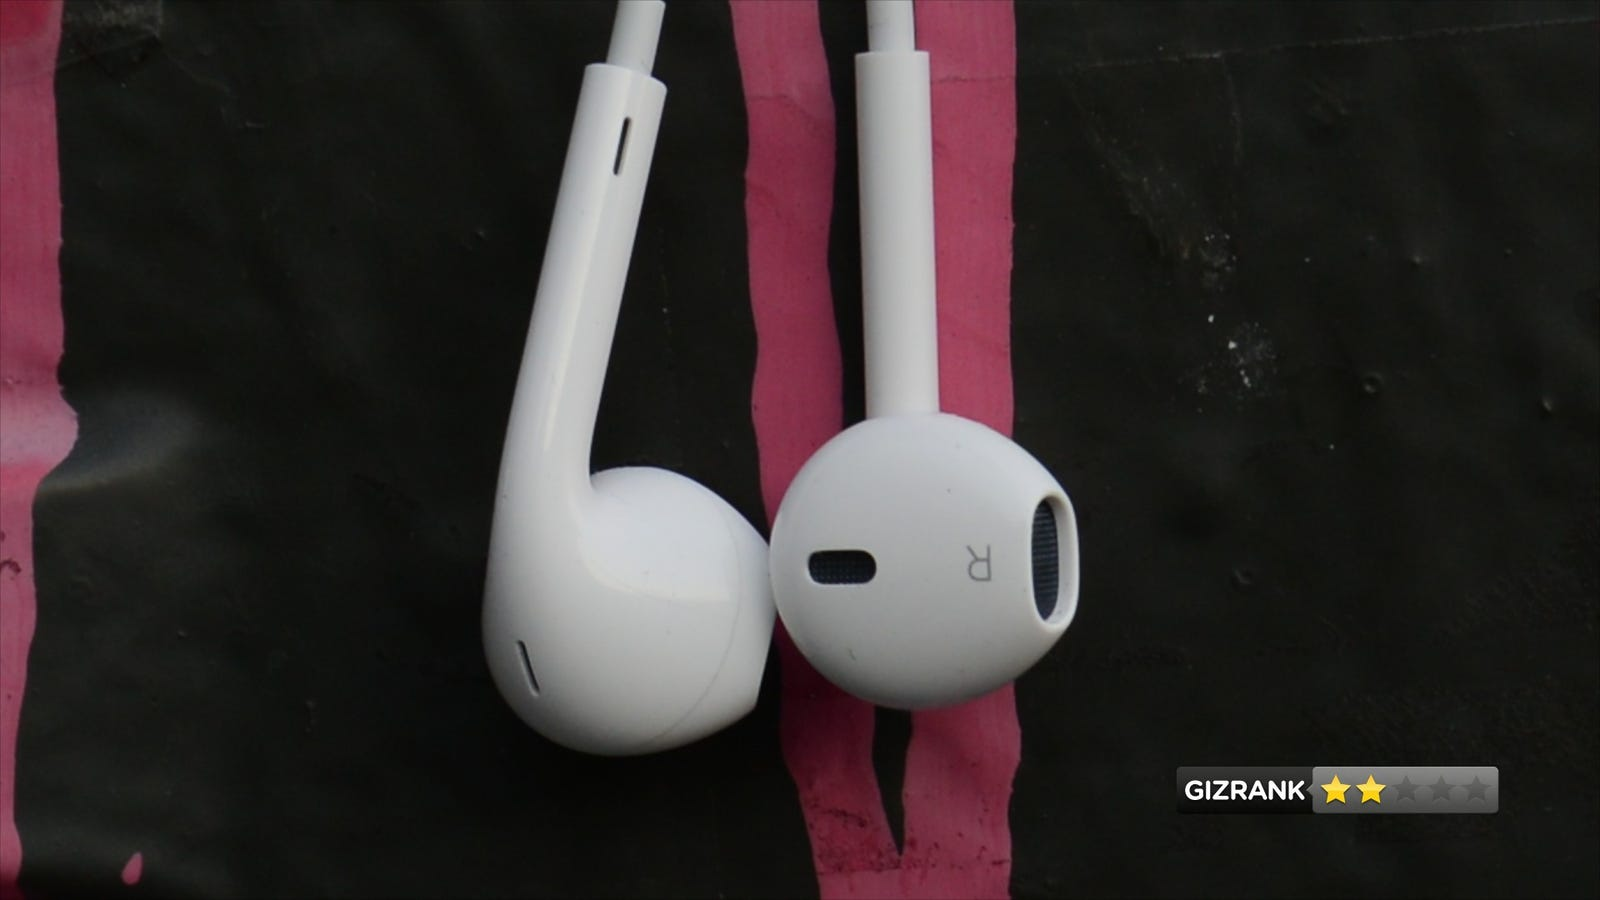 samsung earbuds galaxy note 5 - Apple EarPods Review: Better! (But Still Garbage)